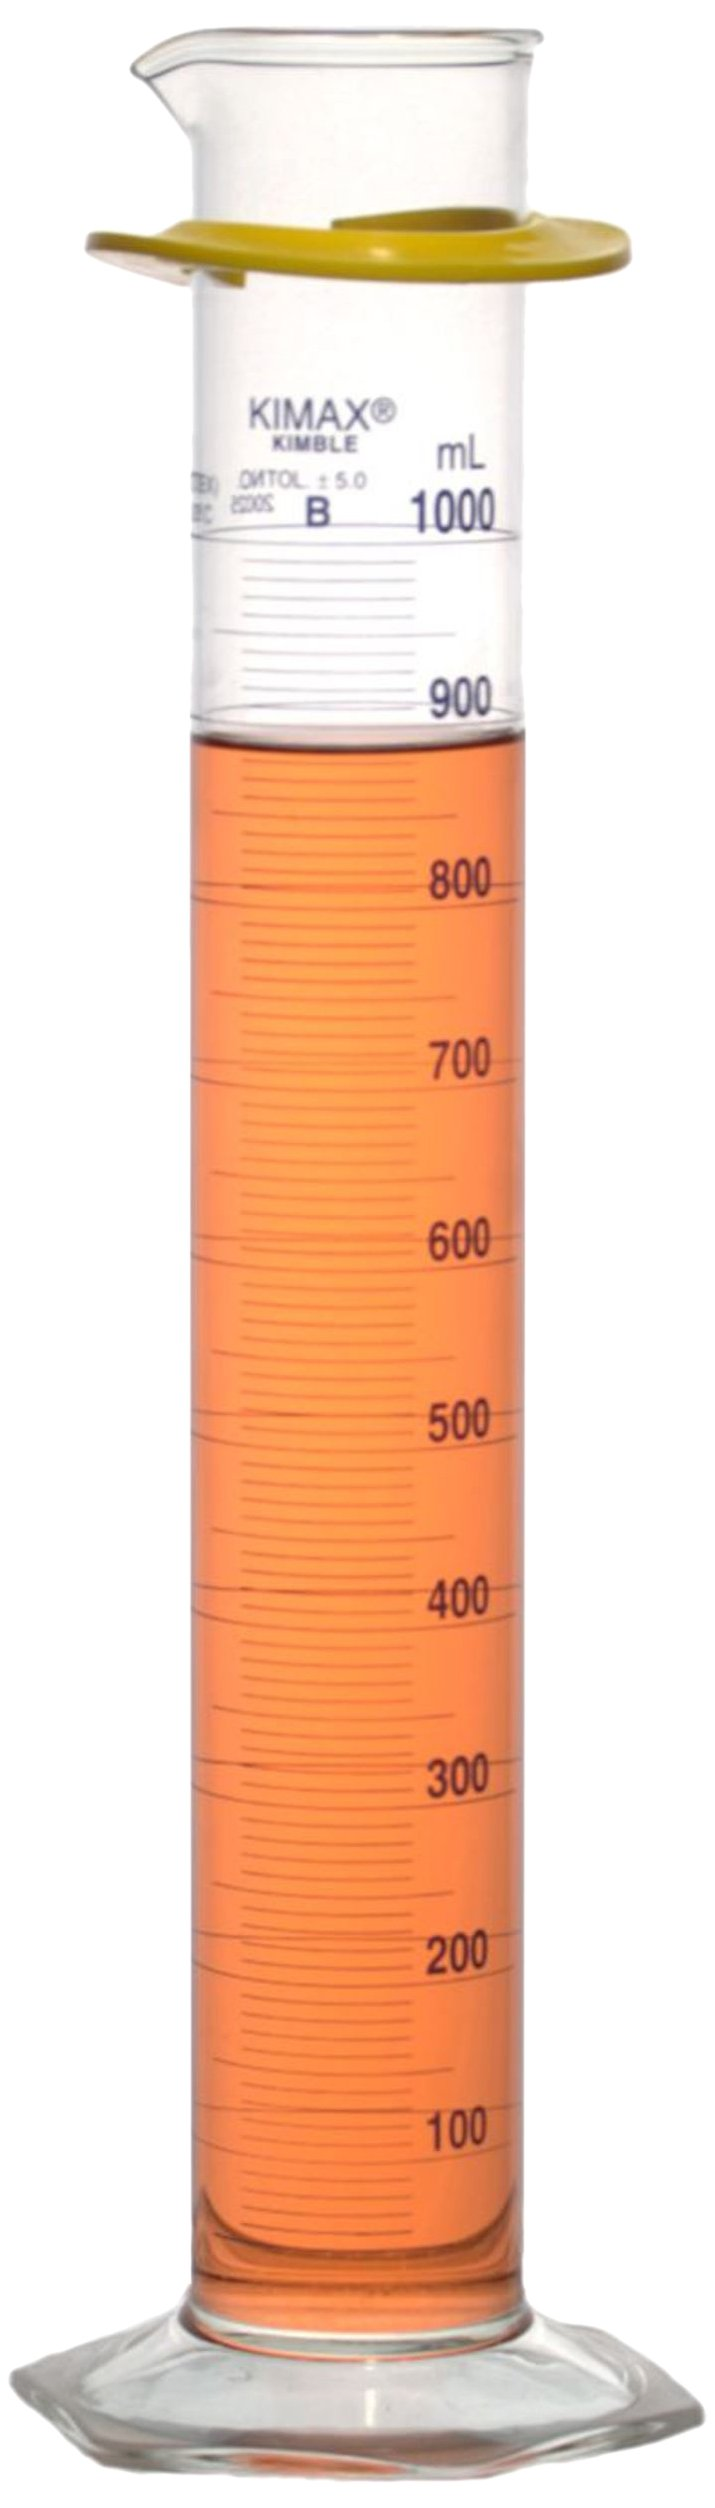 Kimble 20025-1000 Borosilicate Glass Class B Single Blue Metric Scale Graduated Cylinder with Bumper, Calibrated to Deliver, 1L Capacity (Case of 4)